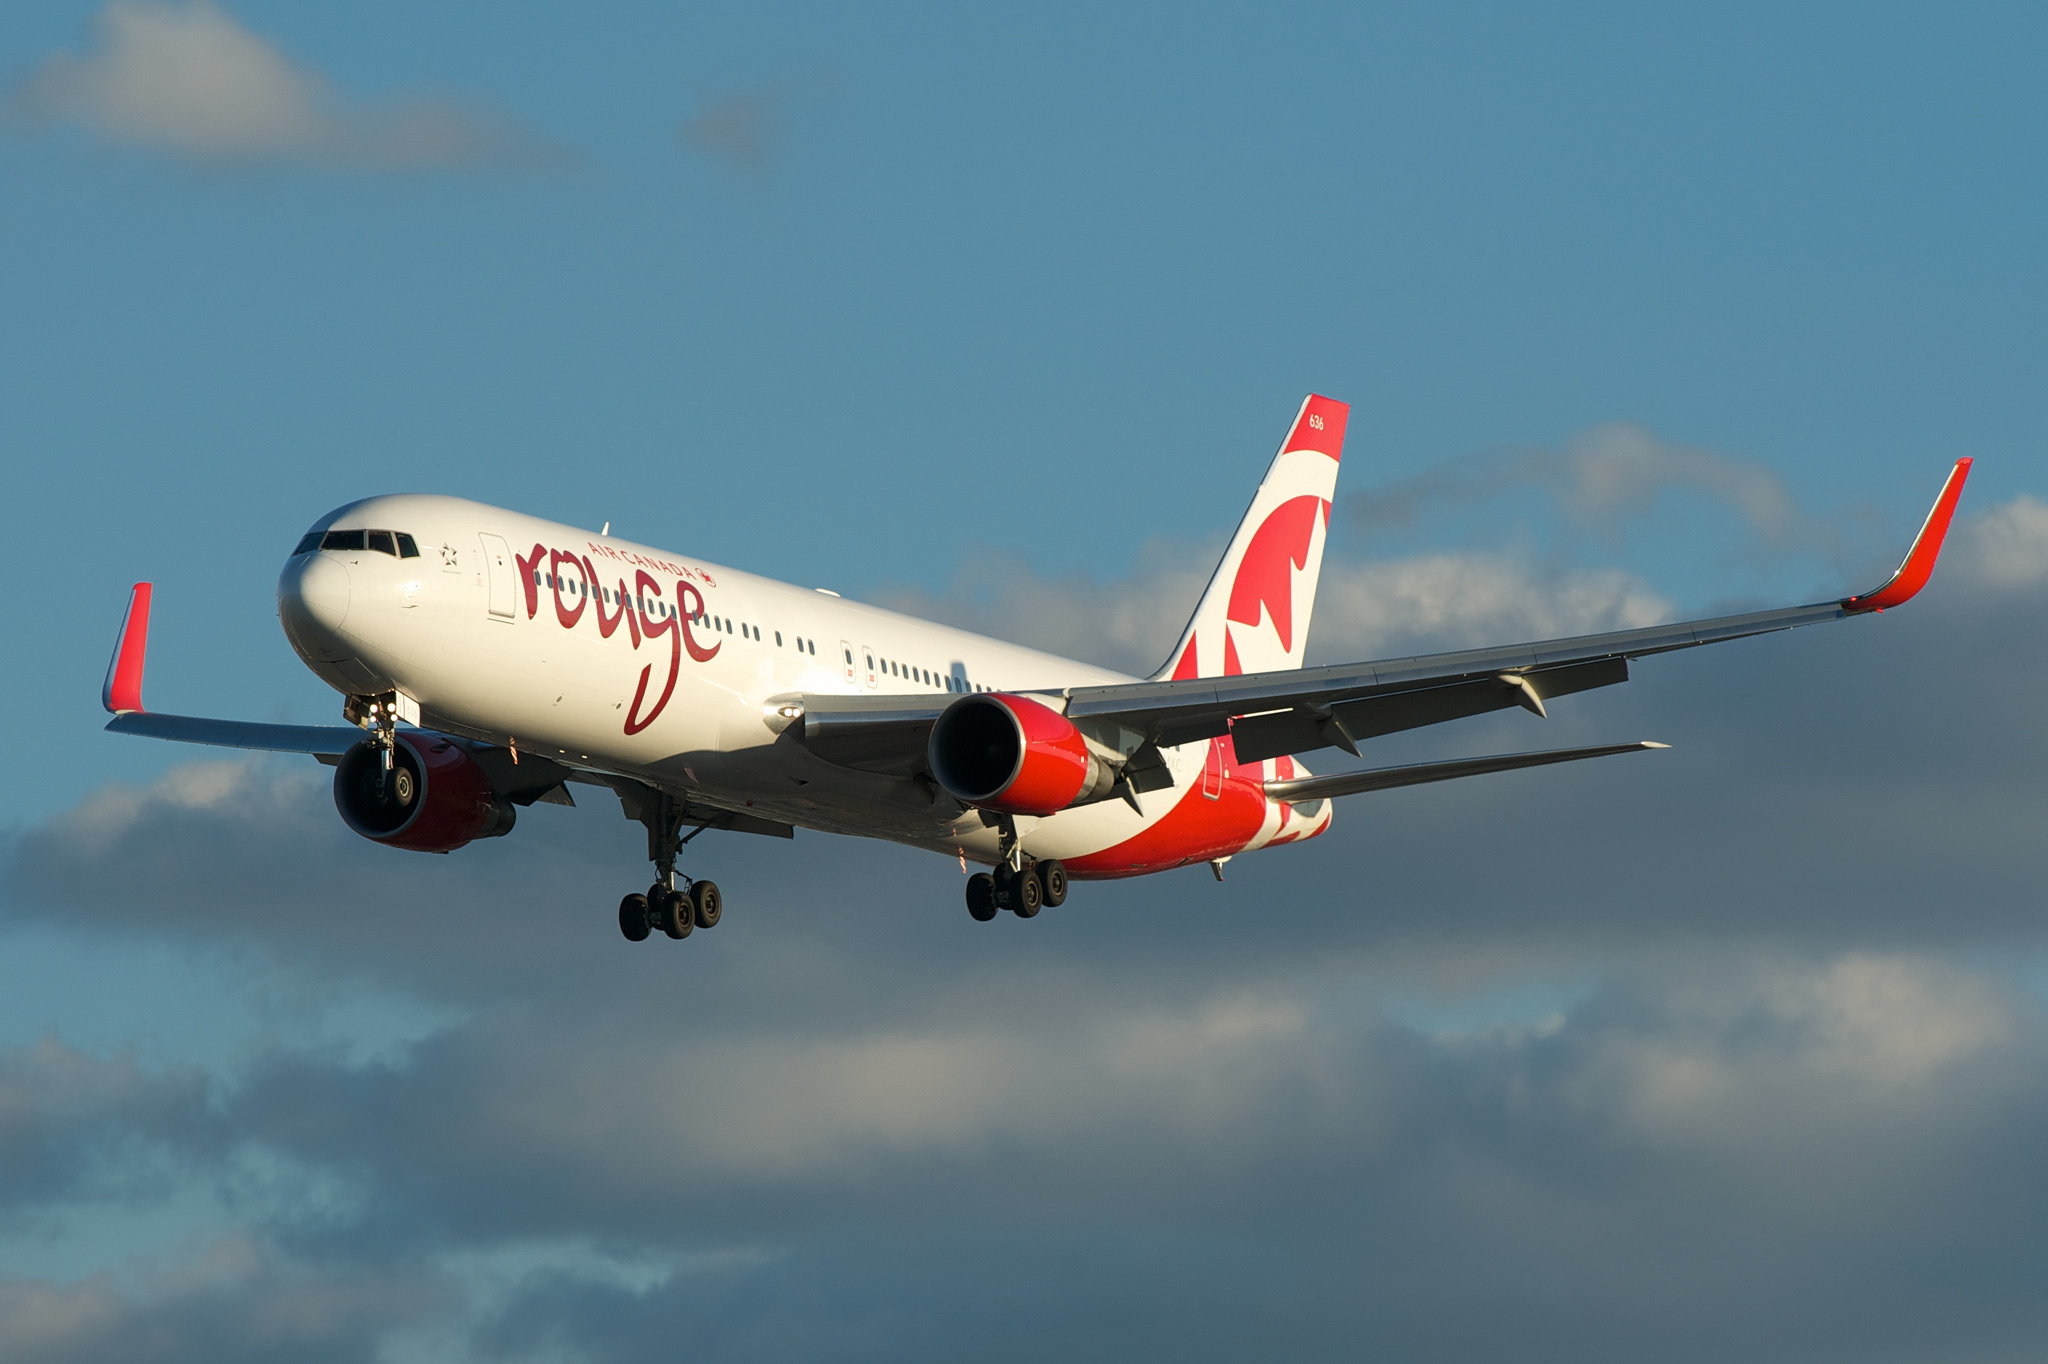 Air Canada rouge Boeing 767-300 C-FMXC par BriYYZ sous (CC BY-SA 2.0) https://www.flickr.com/photos/bribri/14430150595/ https://creativecommons.org/licenses/by-sa/2.0/